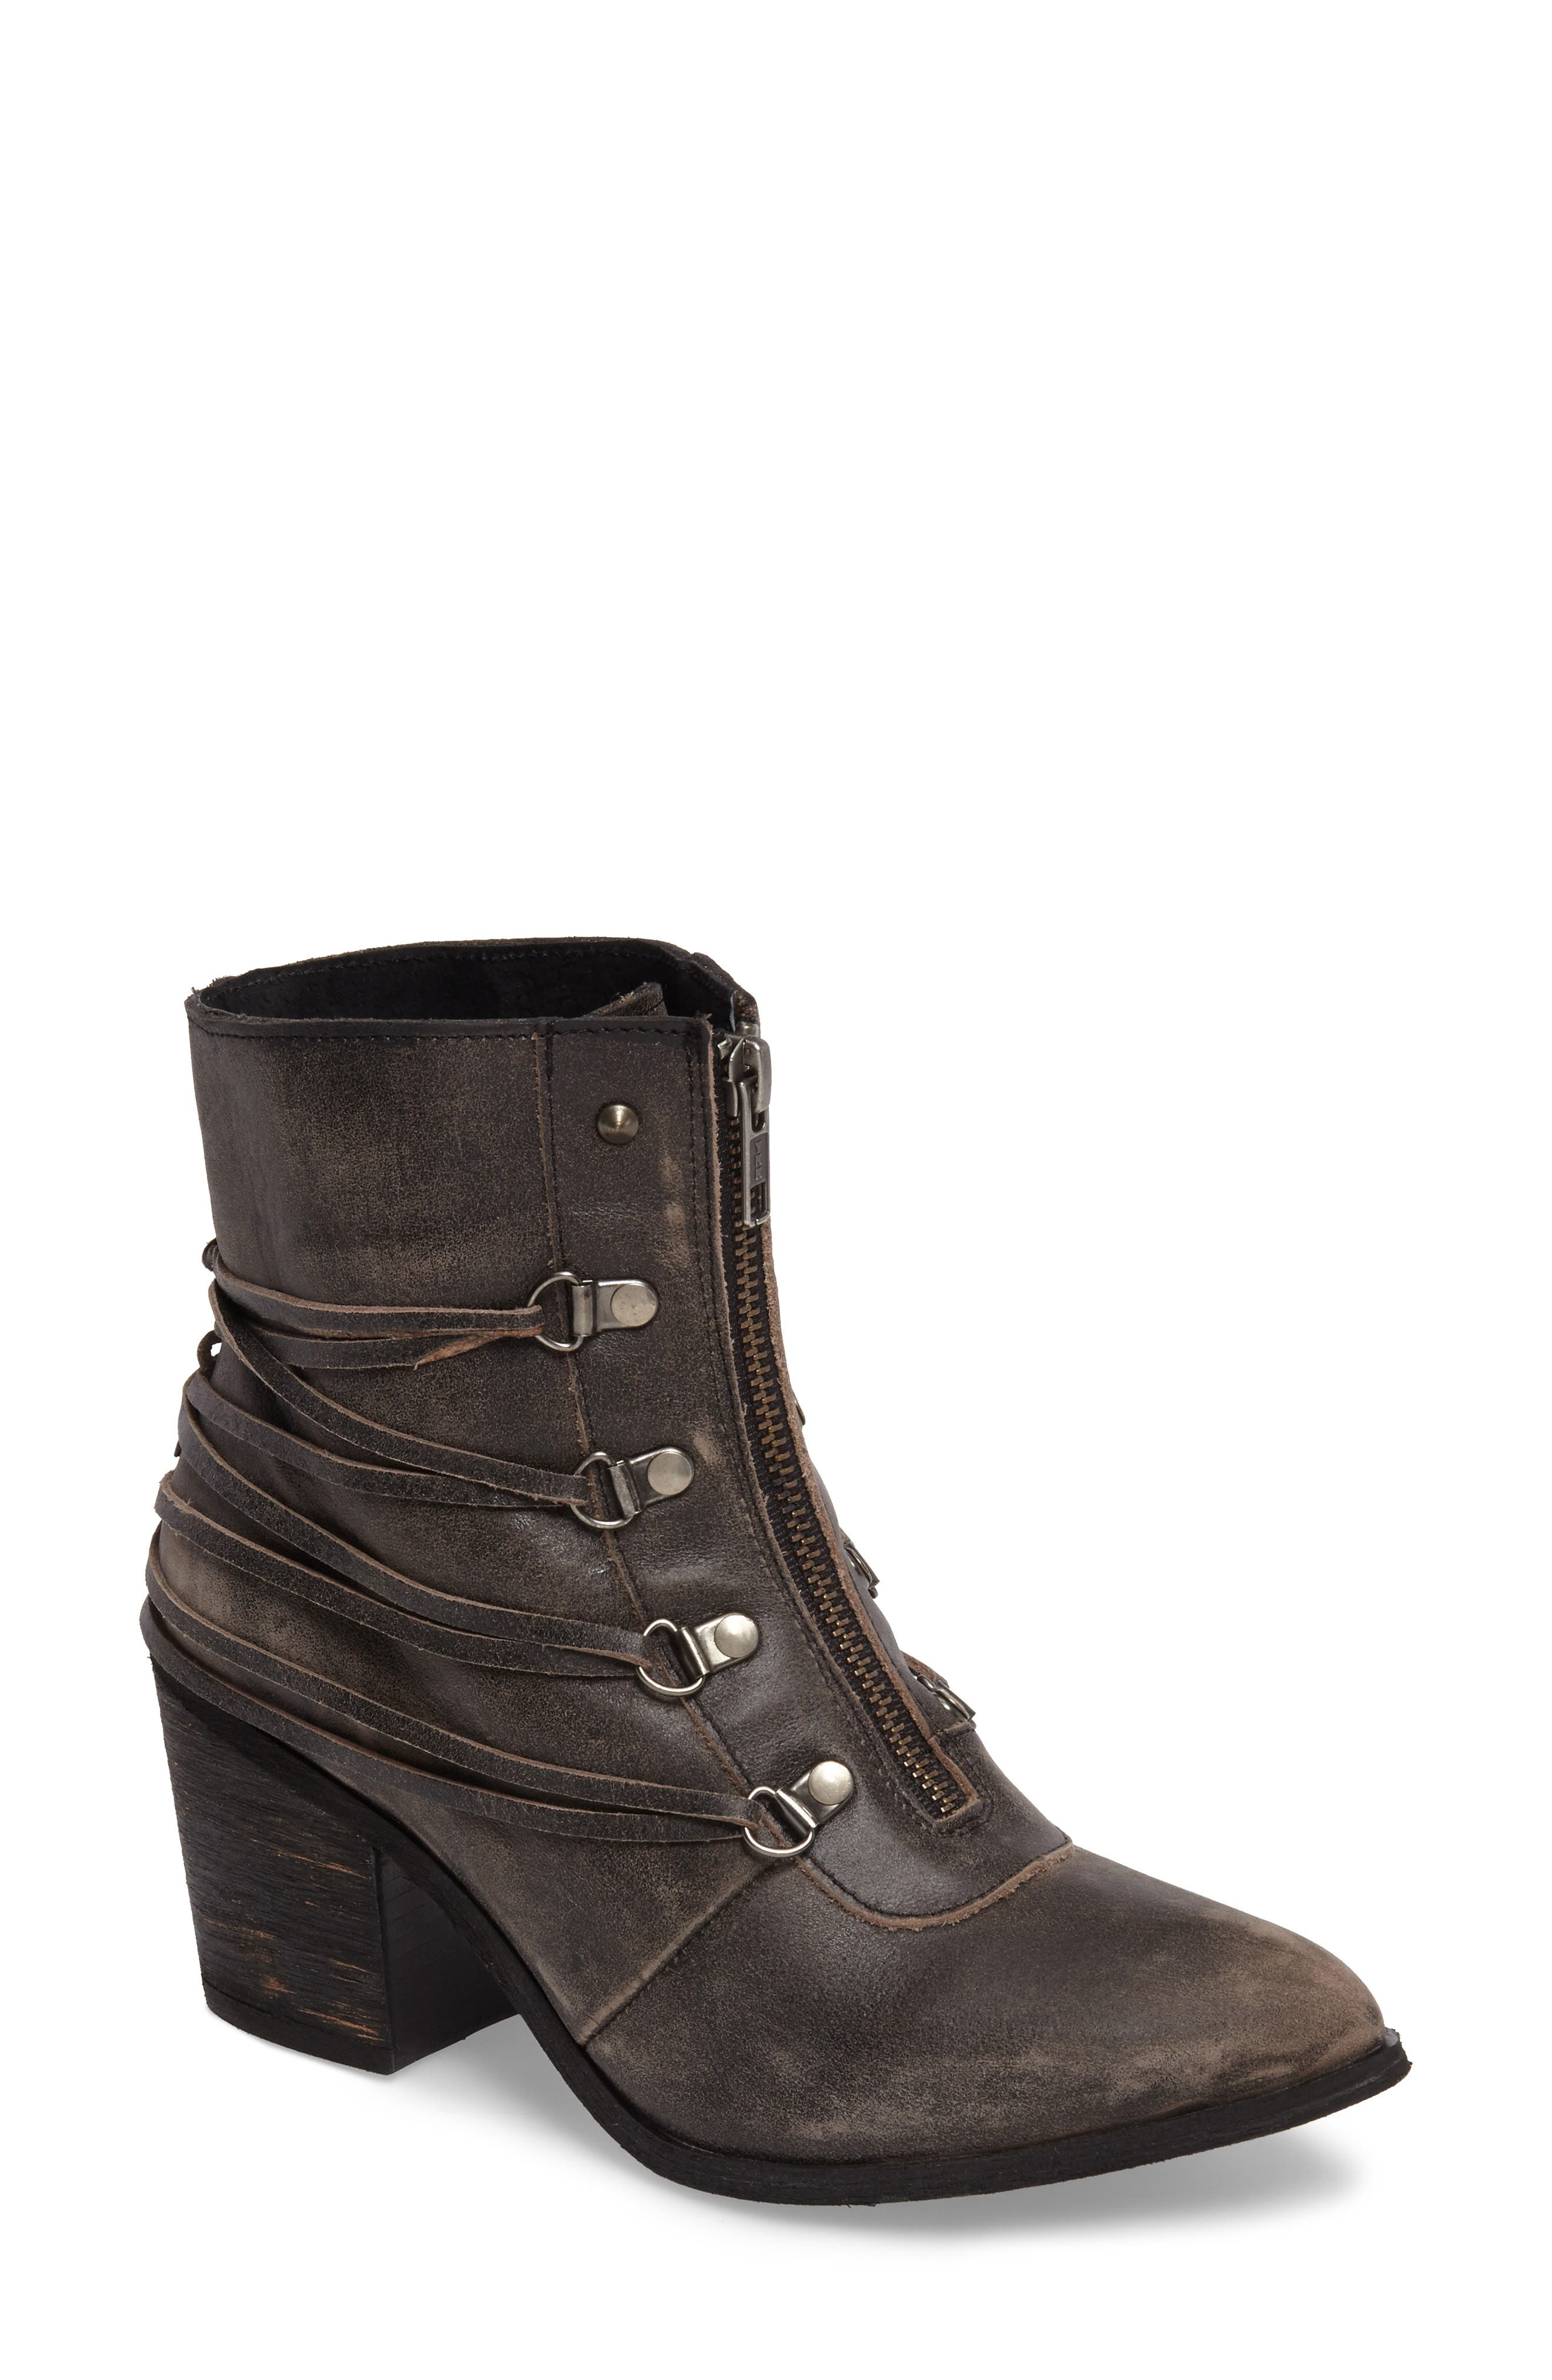 Peacekeeper Lace-Up Bootie,                             Main thumbnail 1, color,                             001